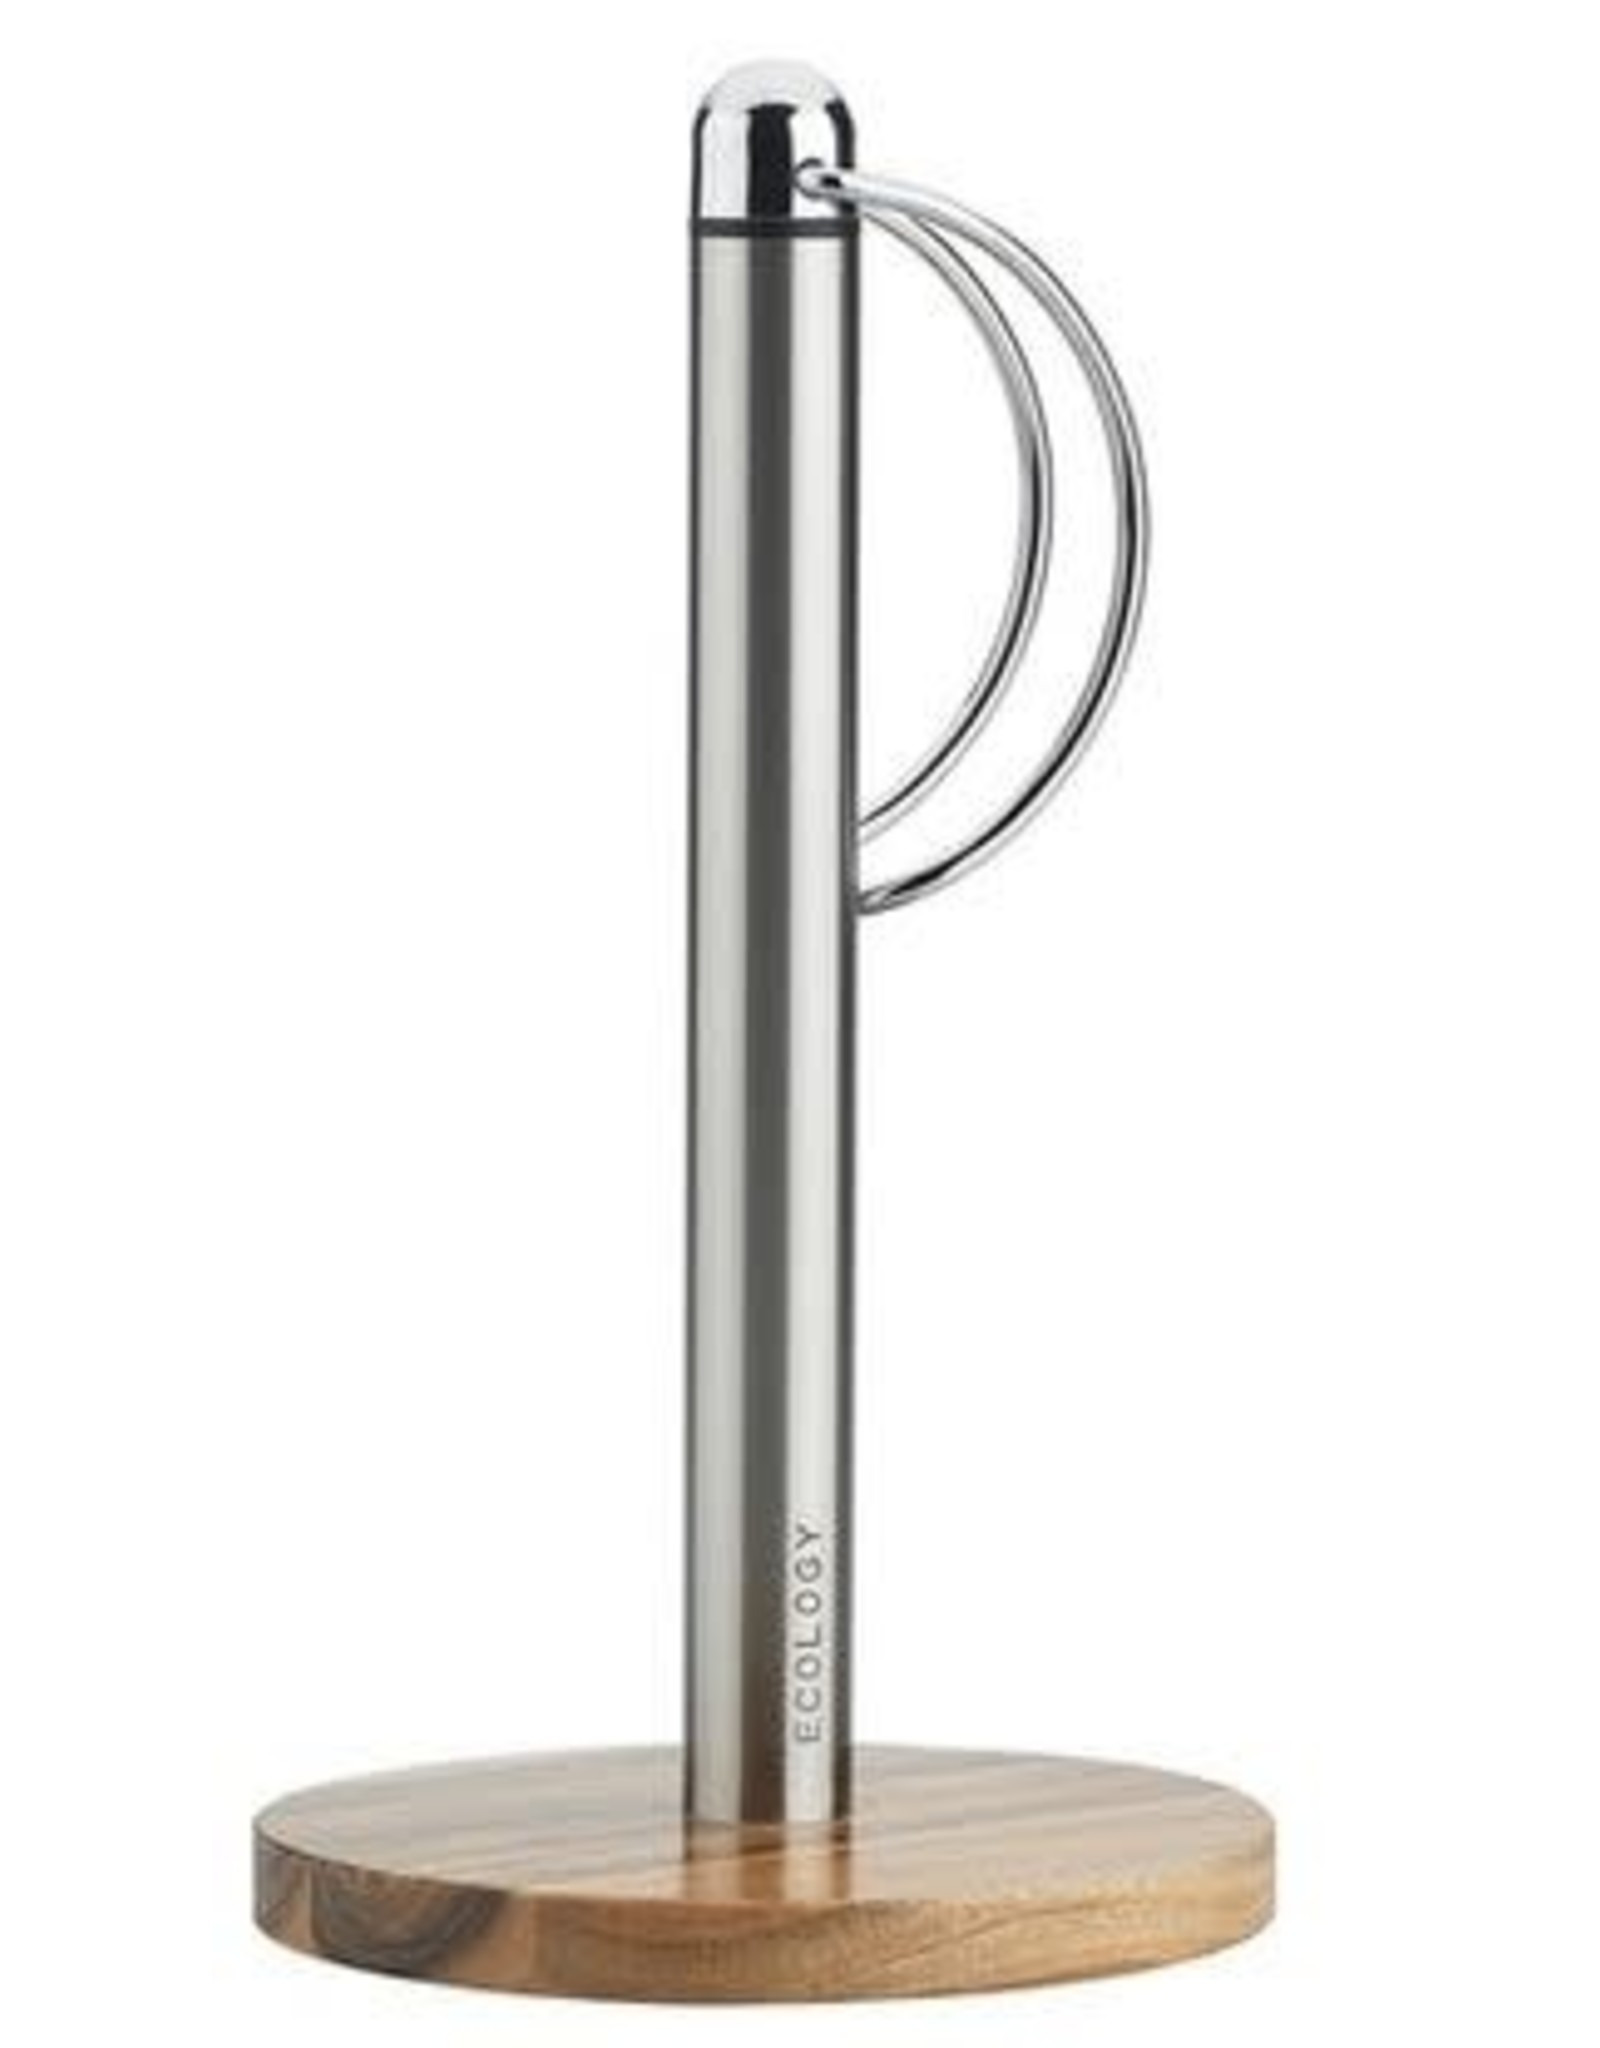 Ecology Ecology Provisions Stainless Steel & Acacia Wood Paper Towel Holder